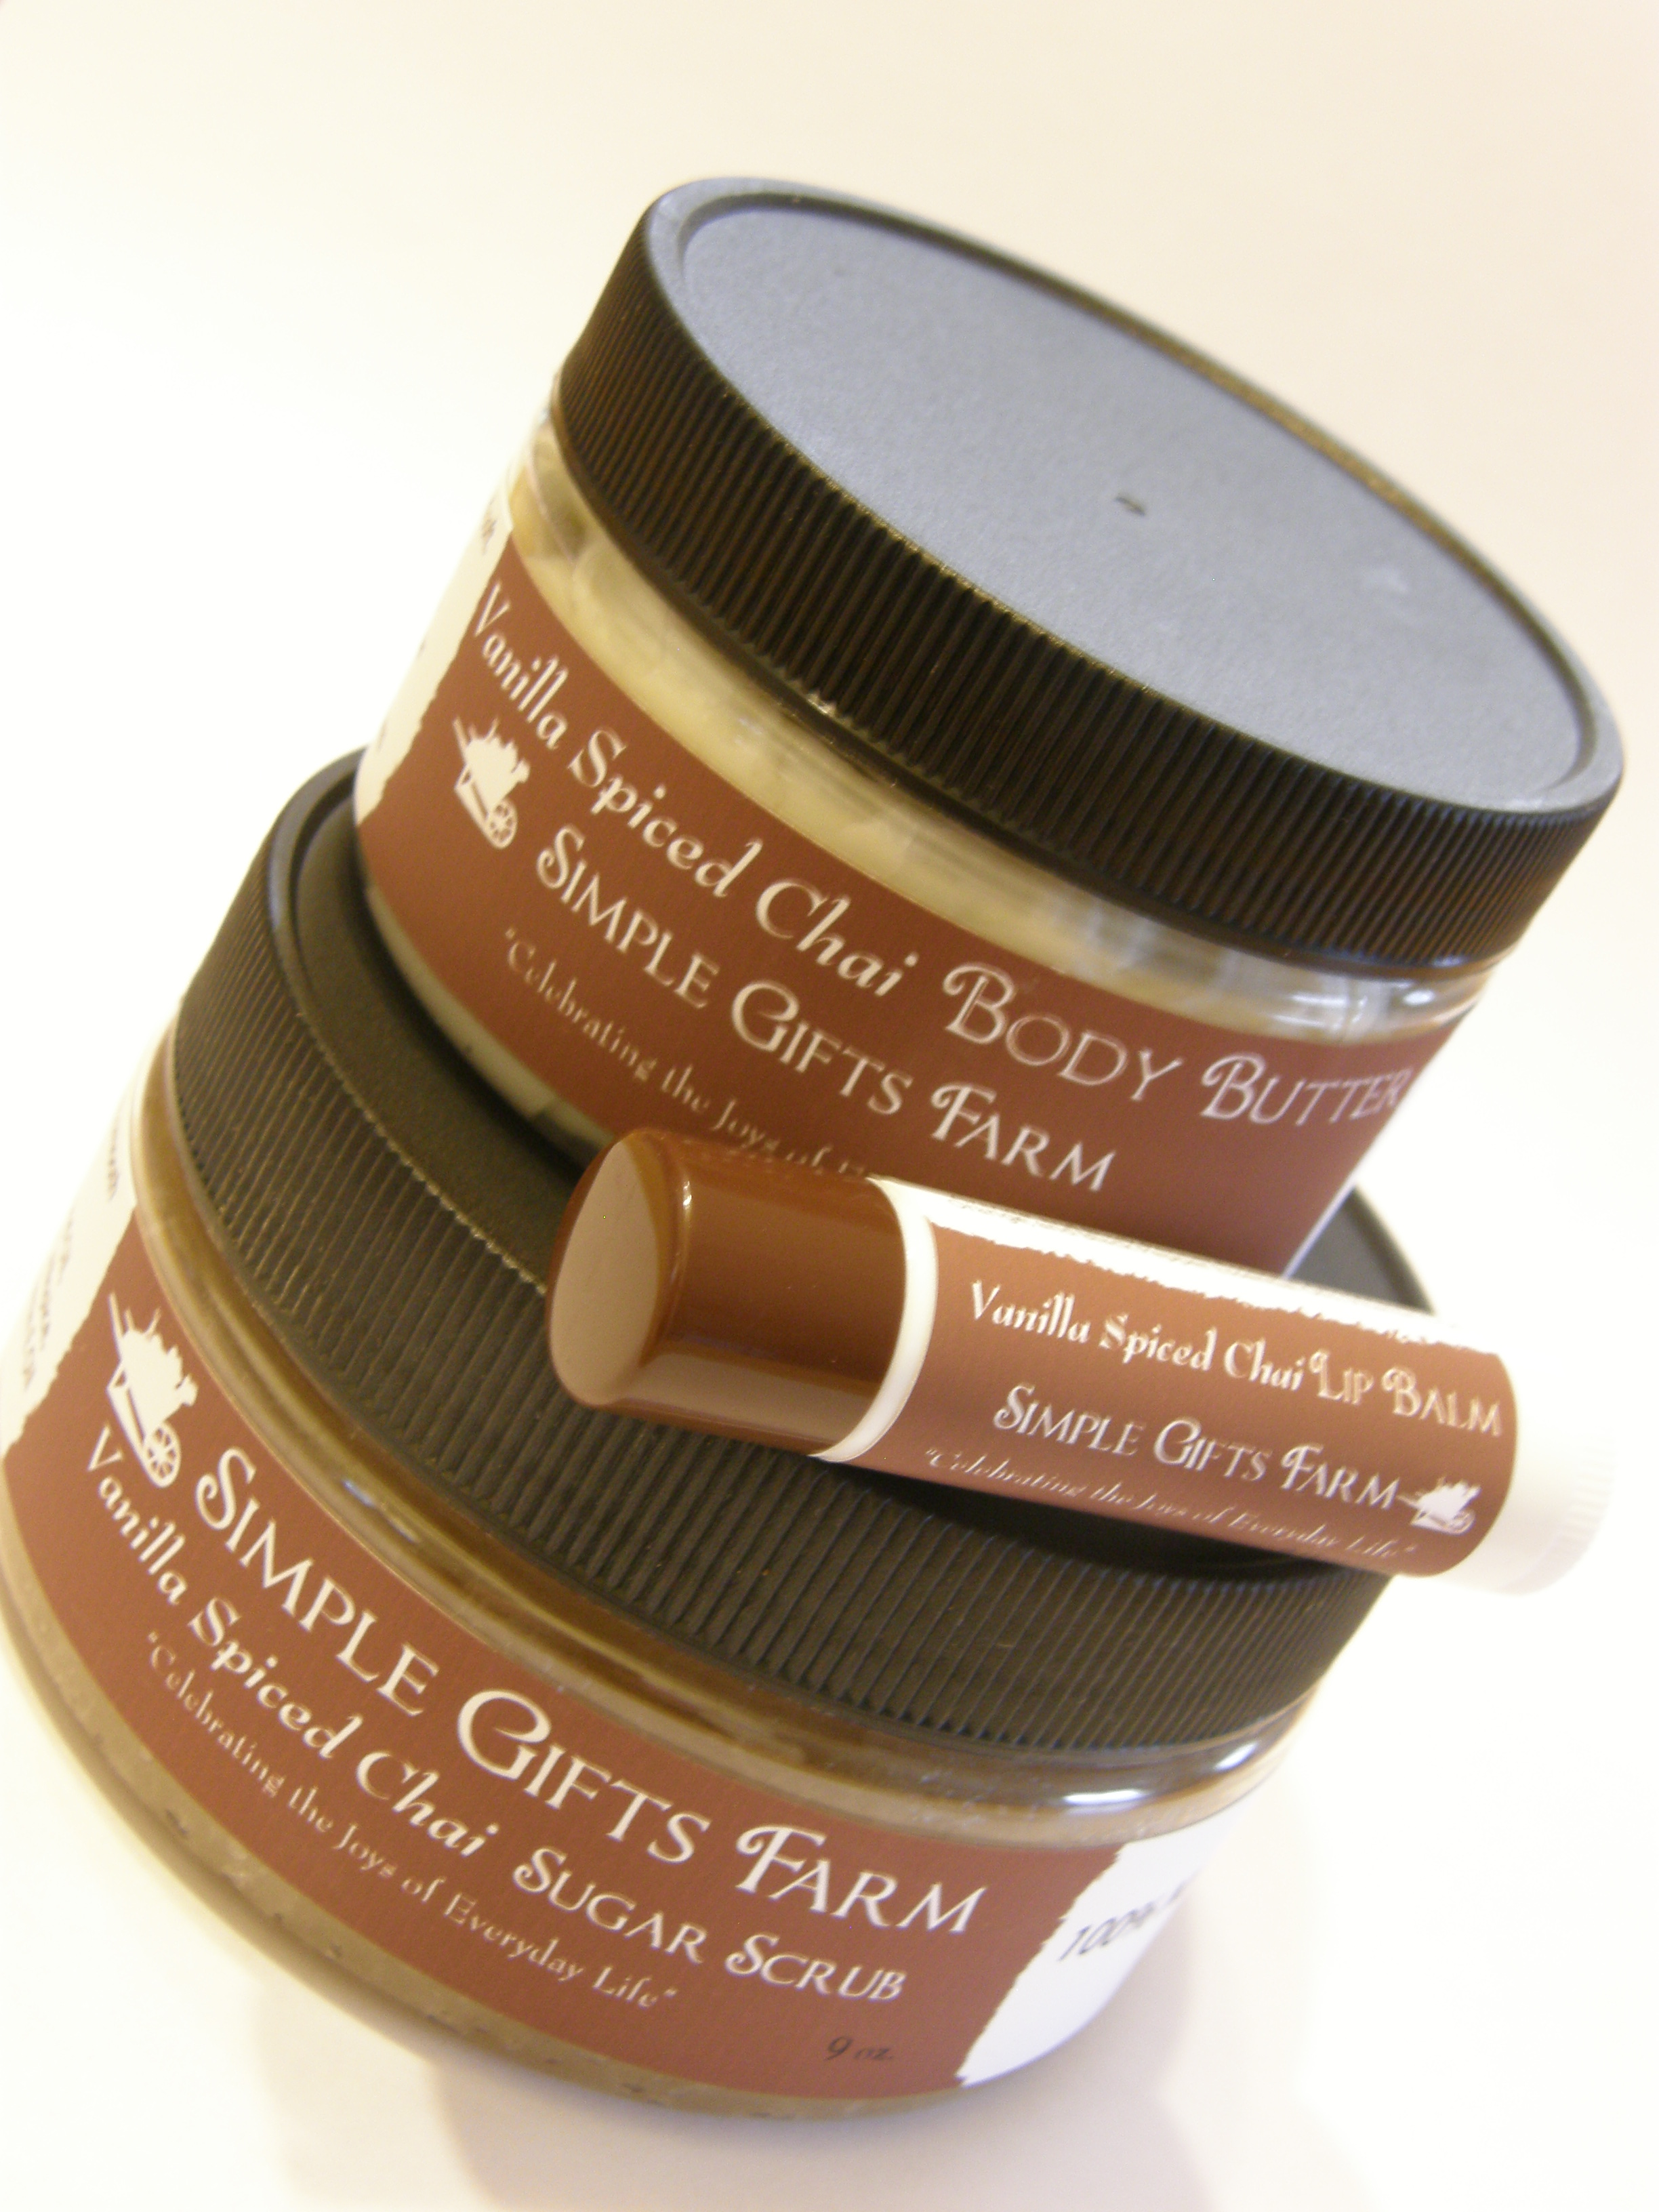 Body Care Product from Simple Gifts Farm